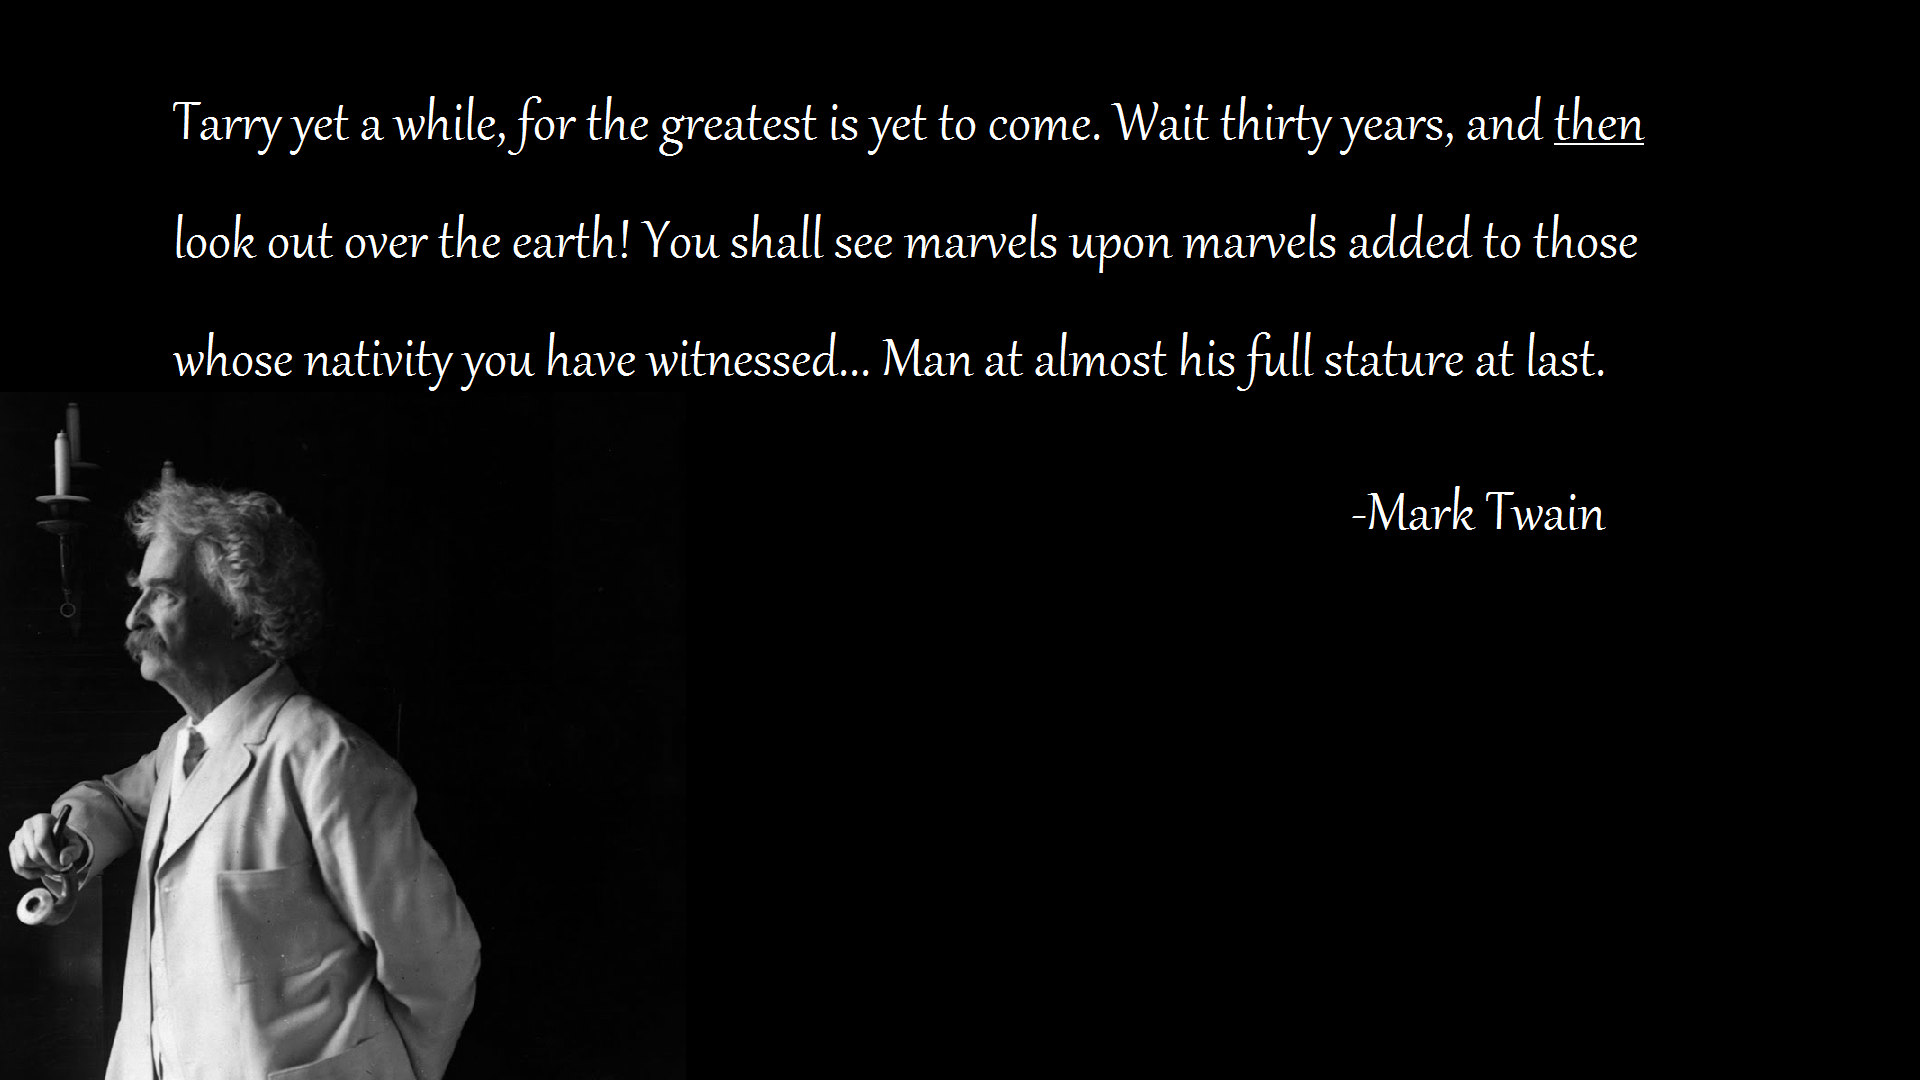 Mark Twain Quotes On Life QuotesGram 1920x1080